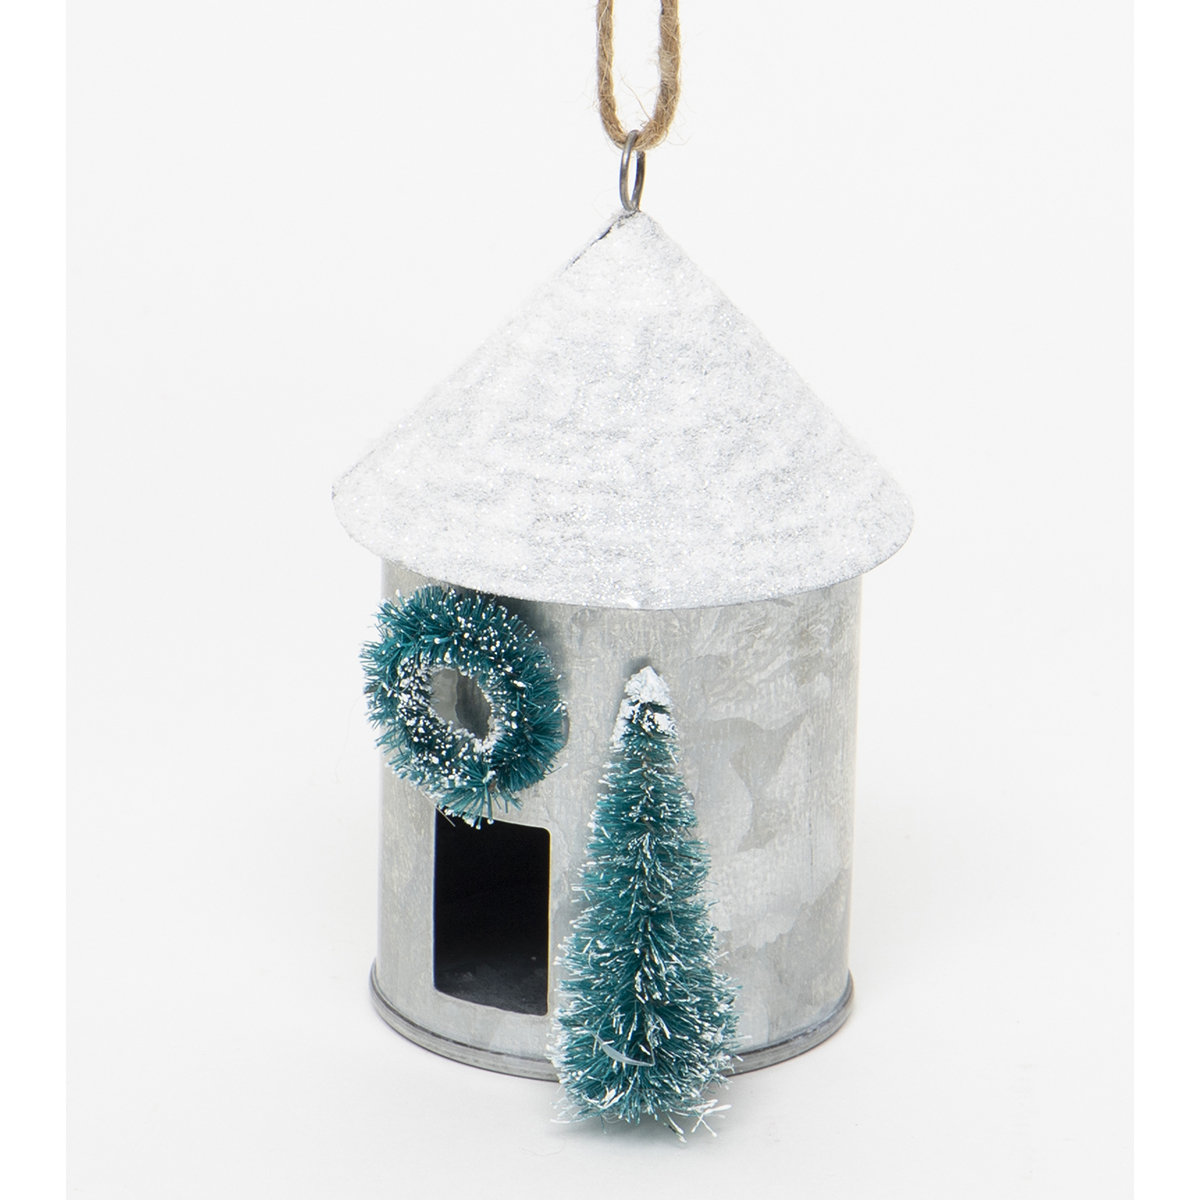 METAL SILO ORNAMENT WITH WHITE GLITTER